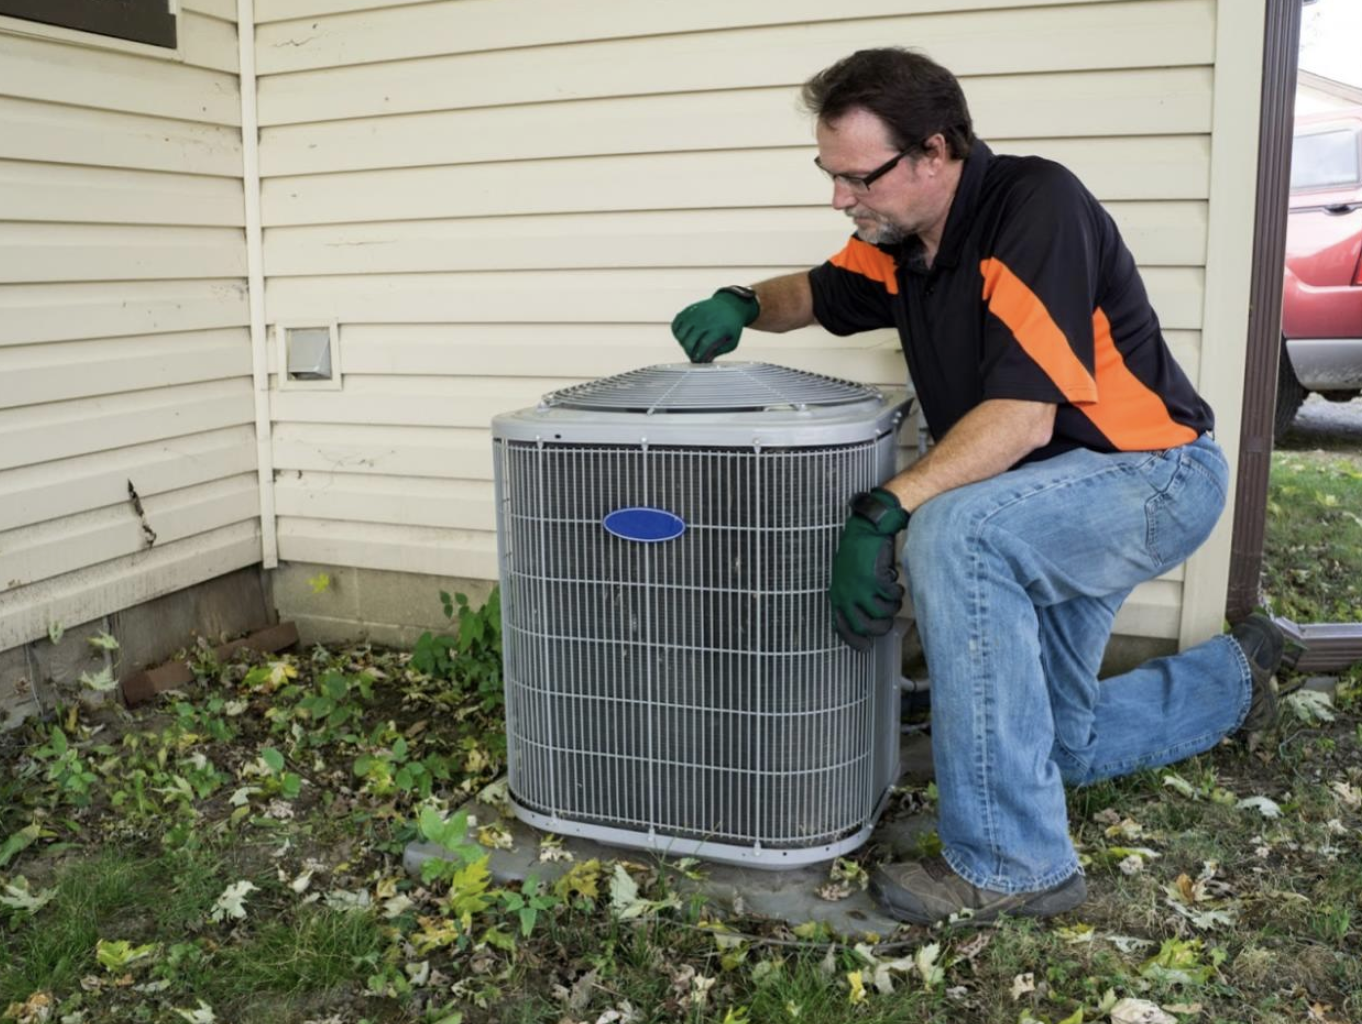 Your outdoor unit may be in great shape but there could be potential problems in other areas of your system. A Mauzy expert can check your entire system.